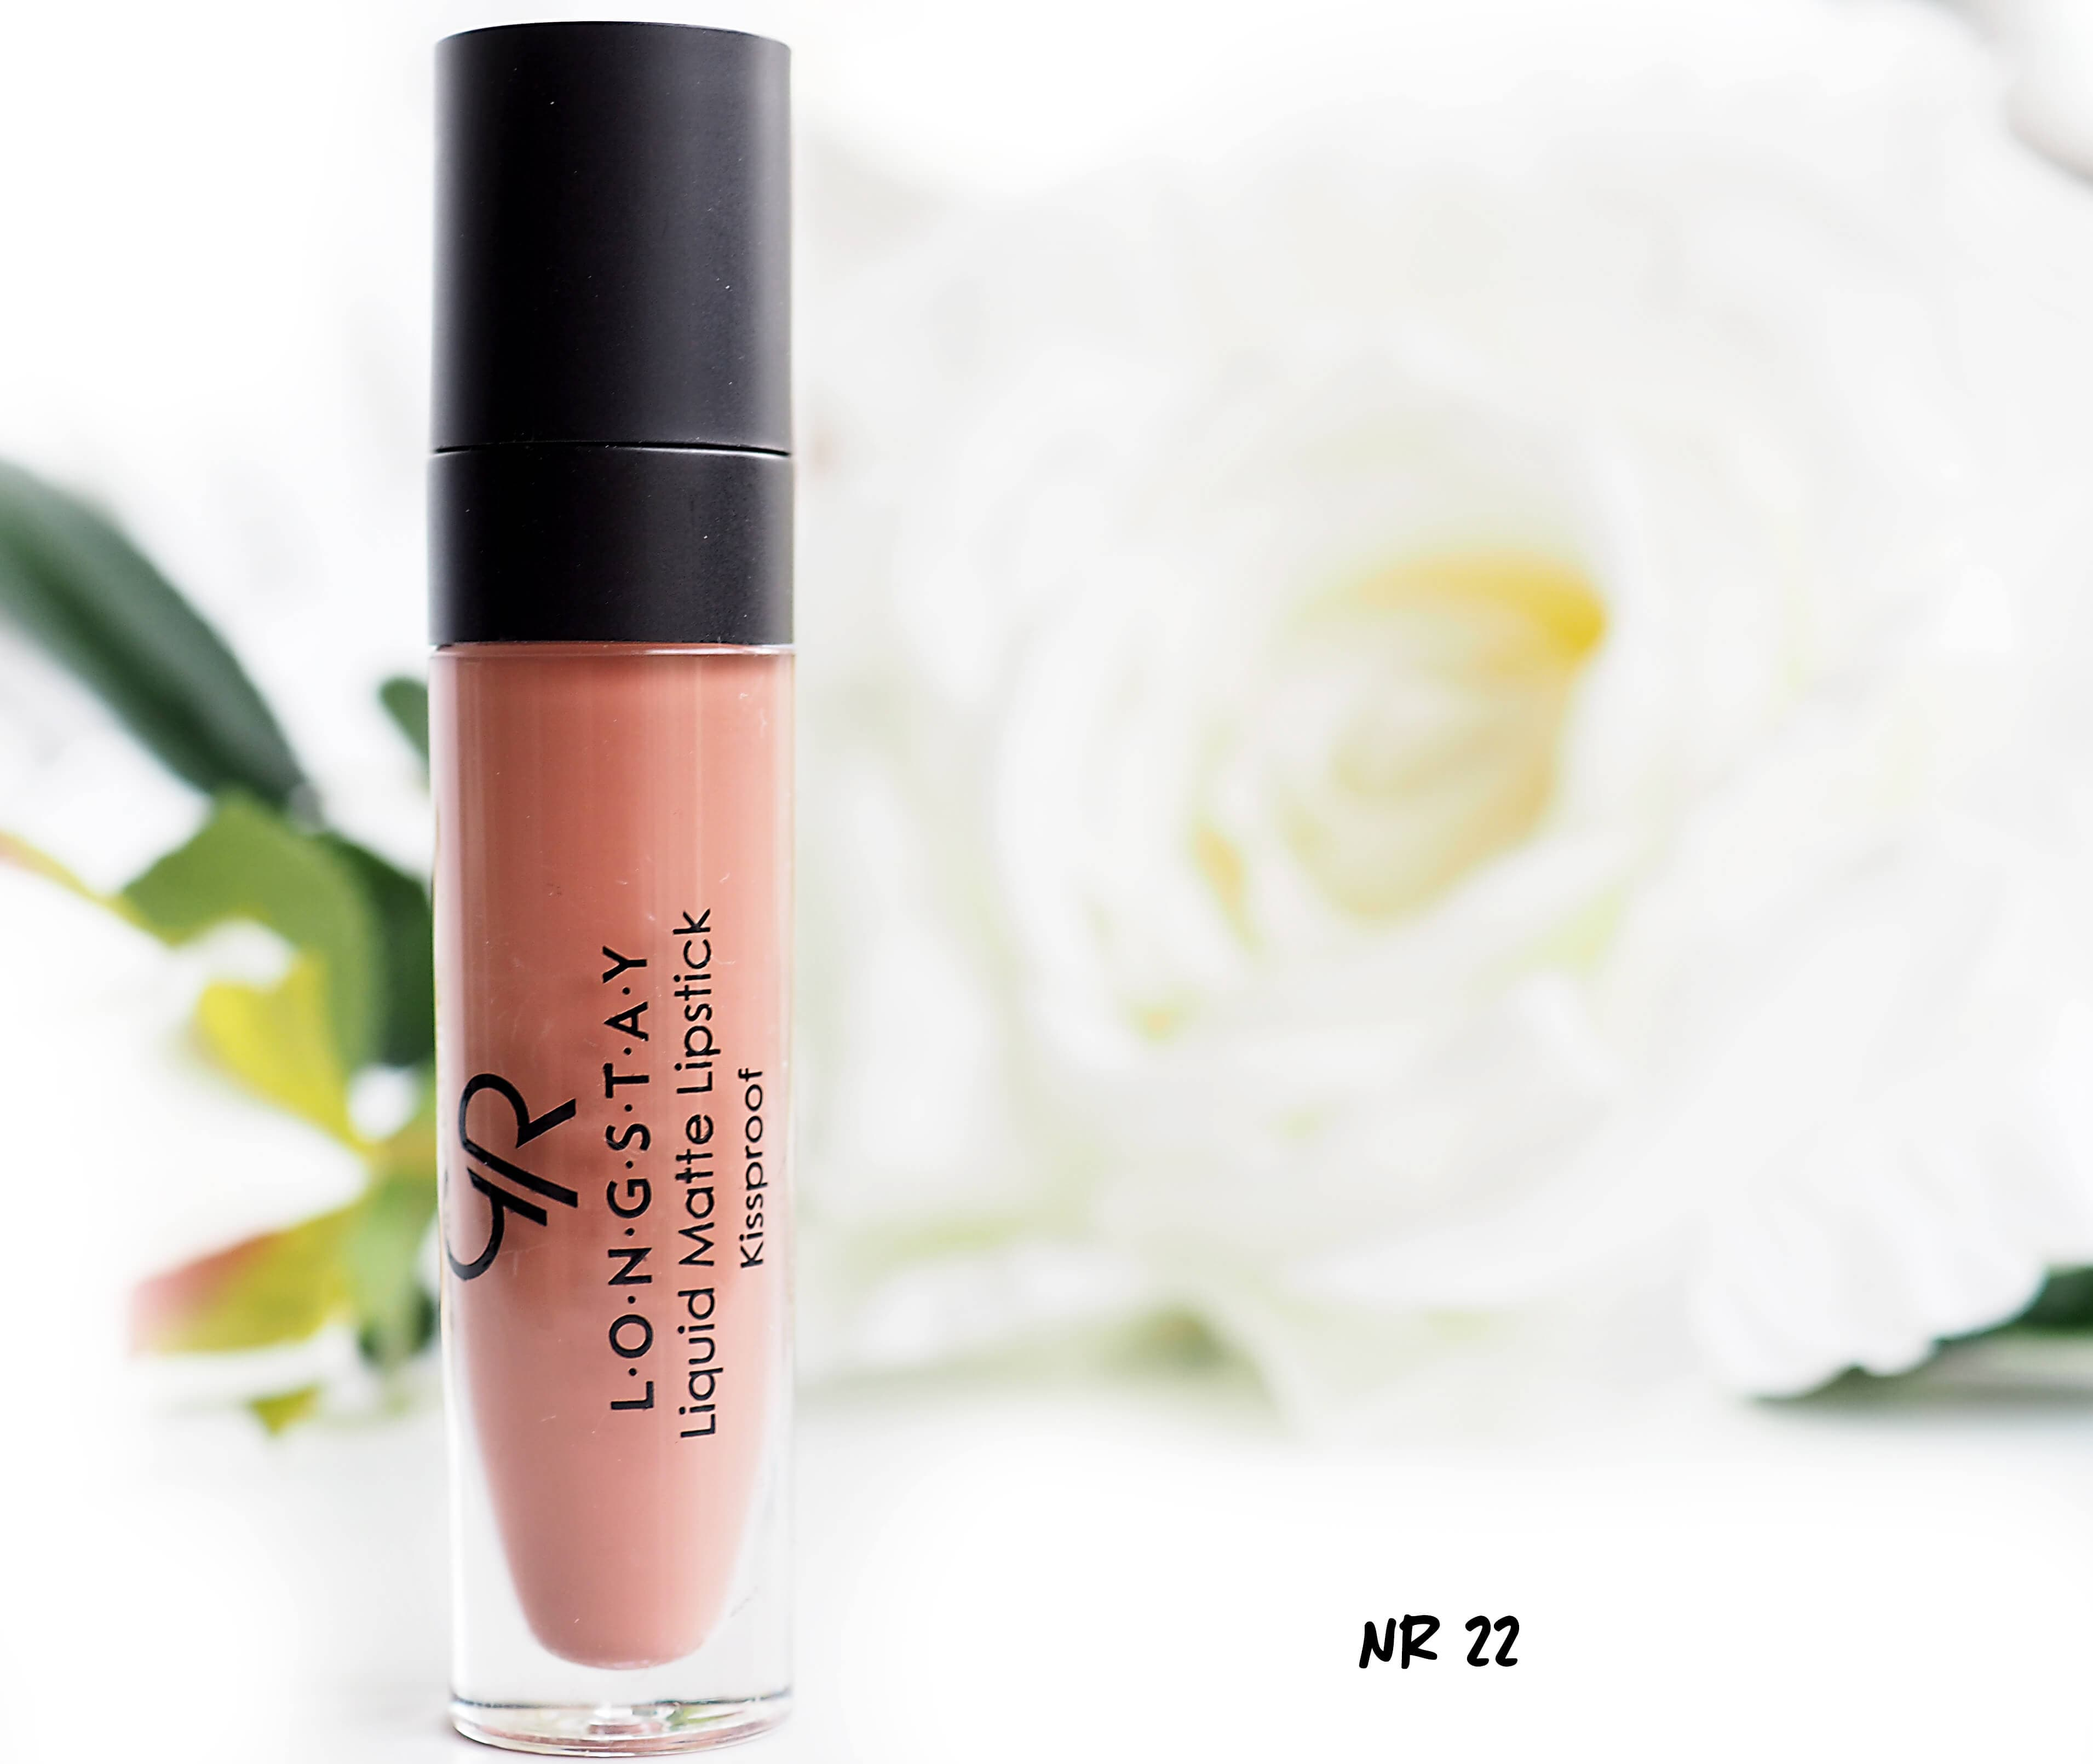 22 GOLDEN ROSE LONGSTAY LIQUID MATTE LIPSTICK